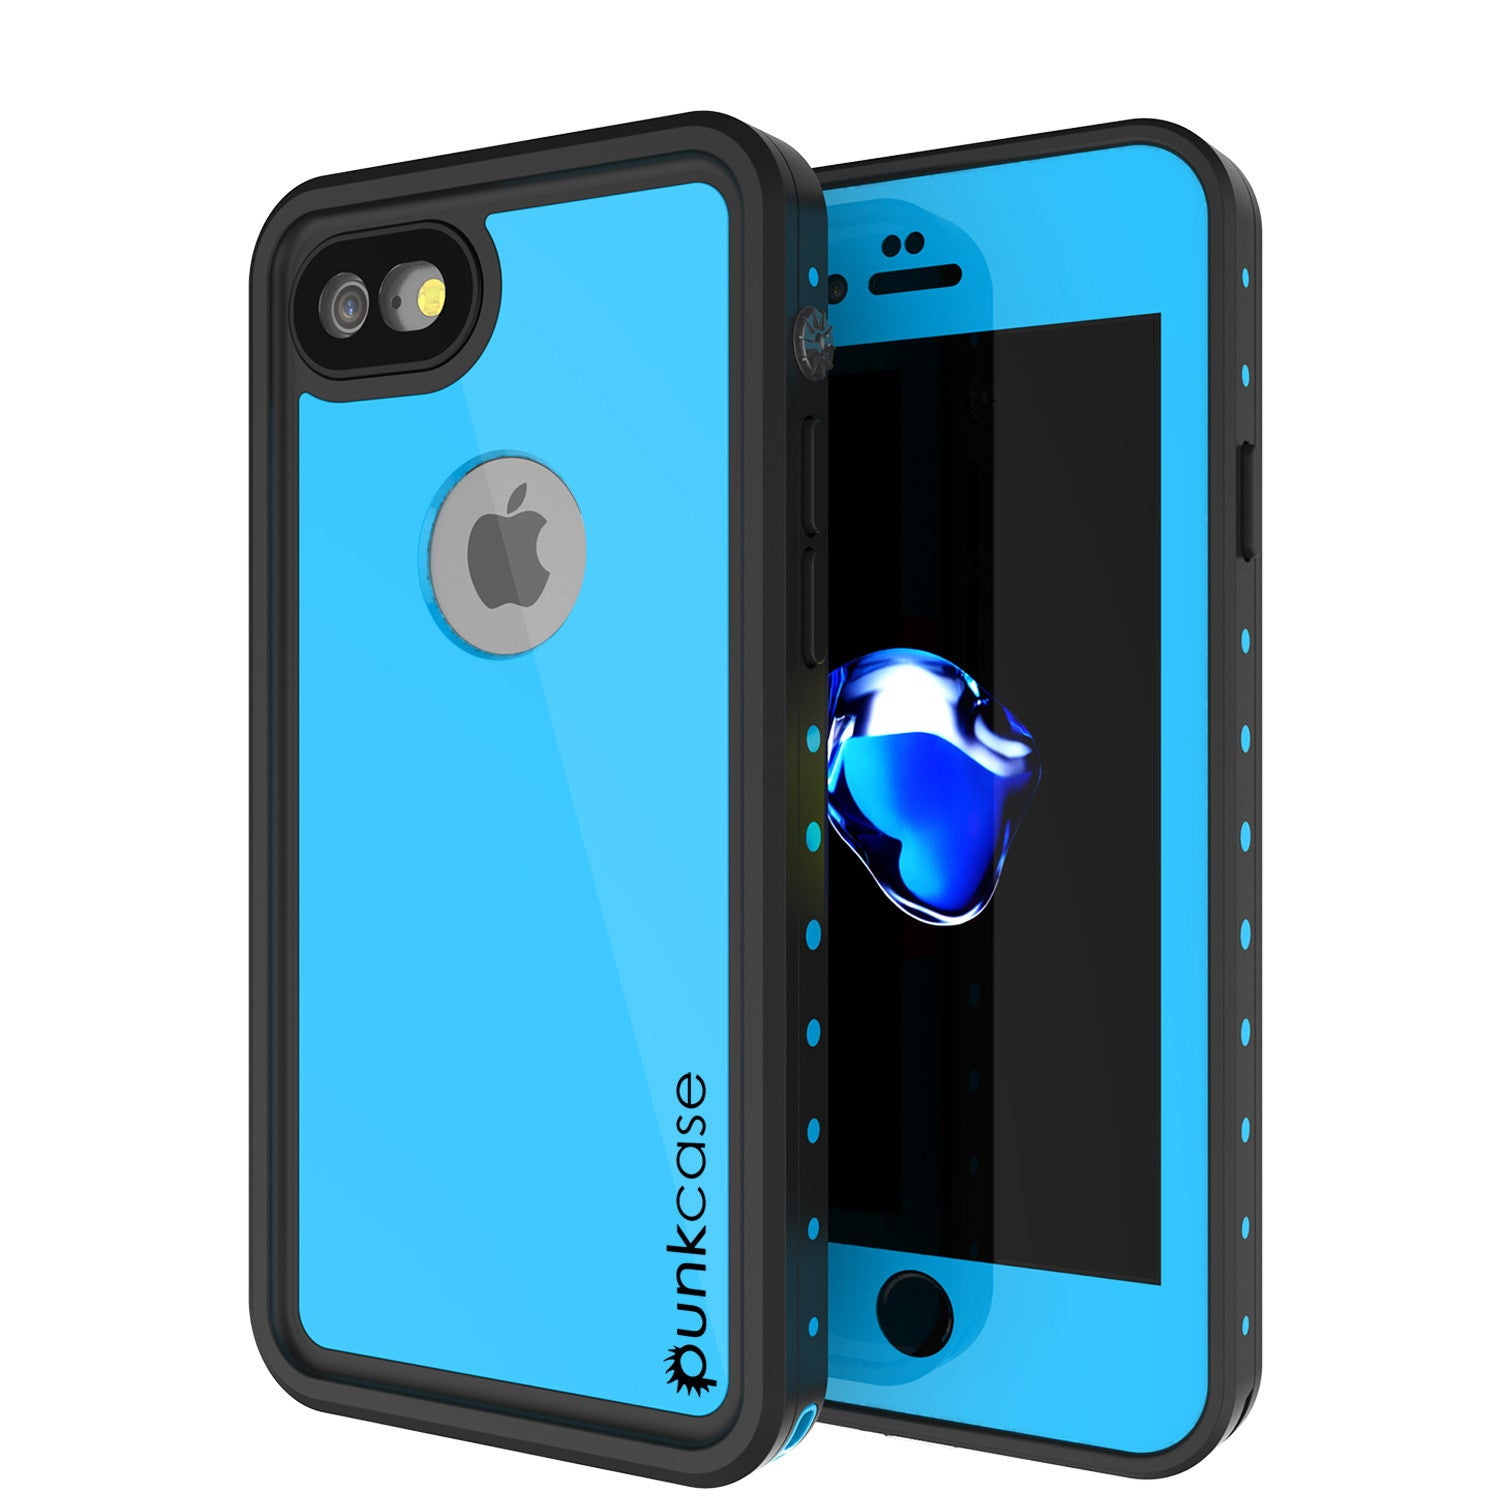 iPhone 7 Waterproof IP68 Case, Punkcase [Light Blue] [StudStar Series] [Slim Fit] [Dirt/Snow Proof]